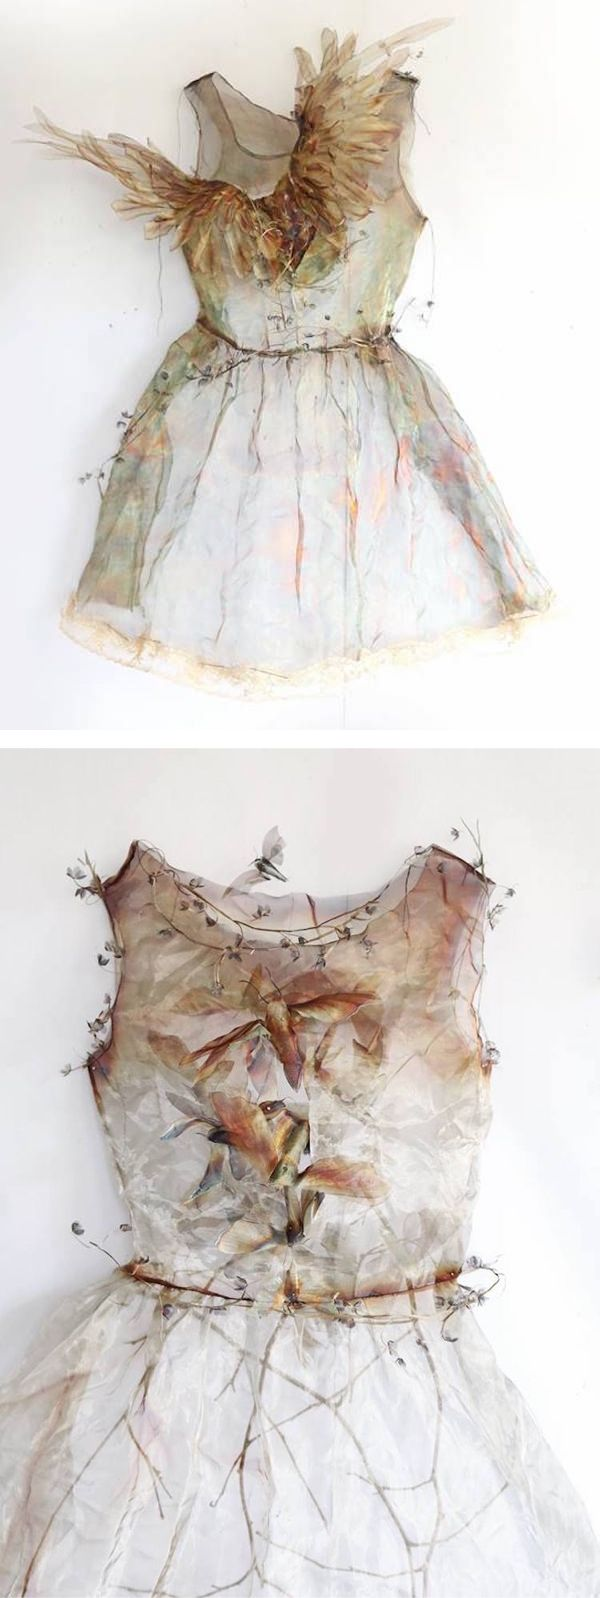 Artist Michelle McKinney plays with themes of hard and soft when she transforms industrial metals into ethereal art installations.